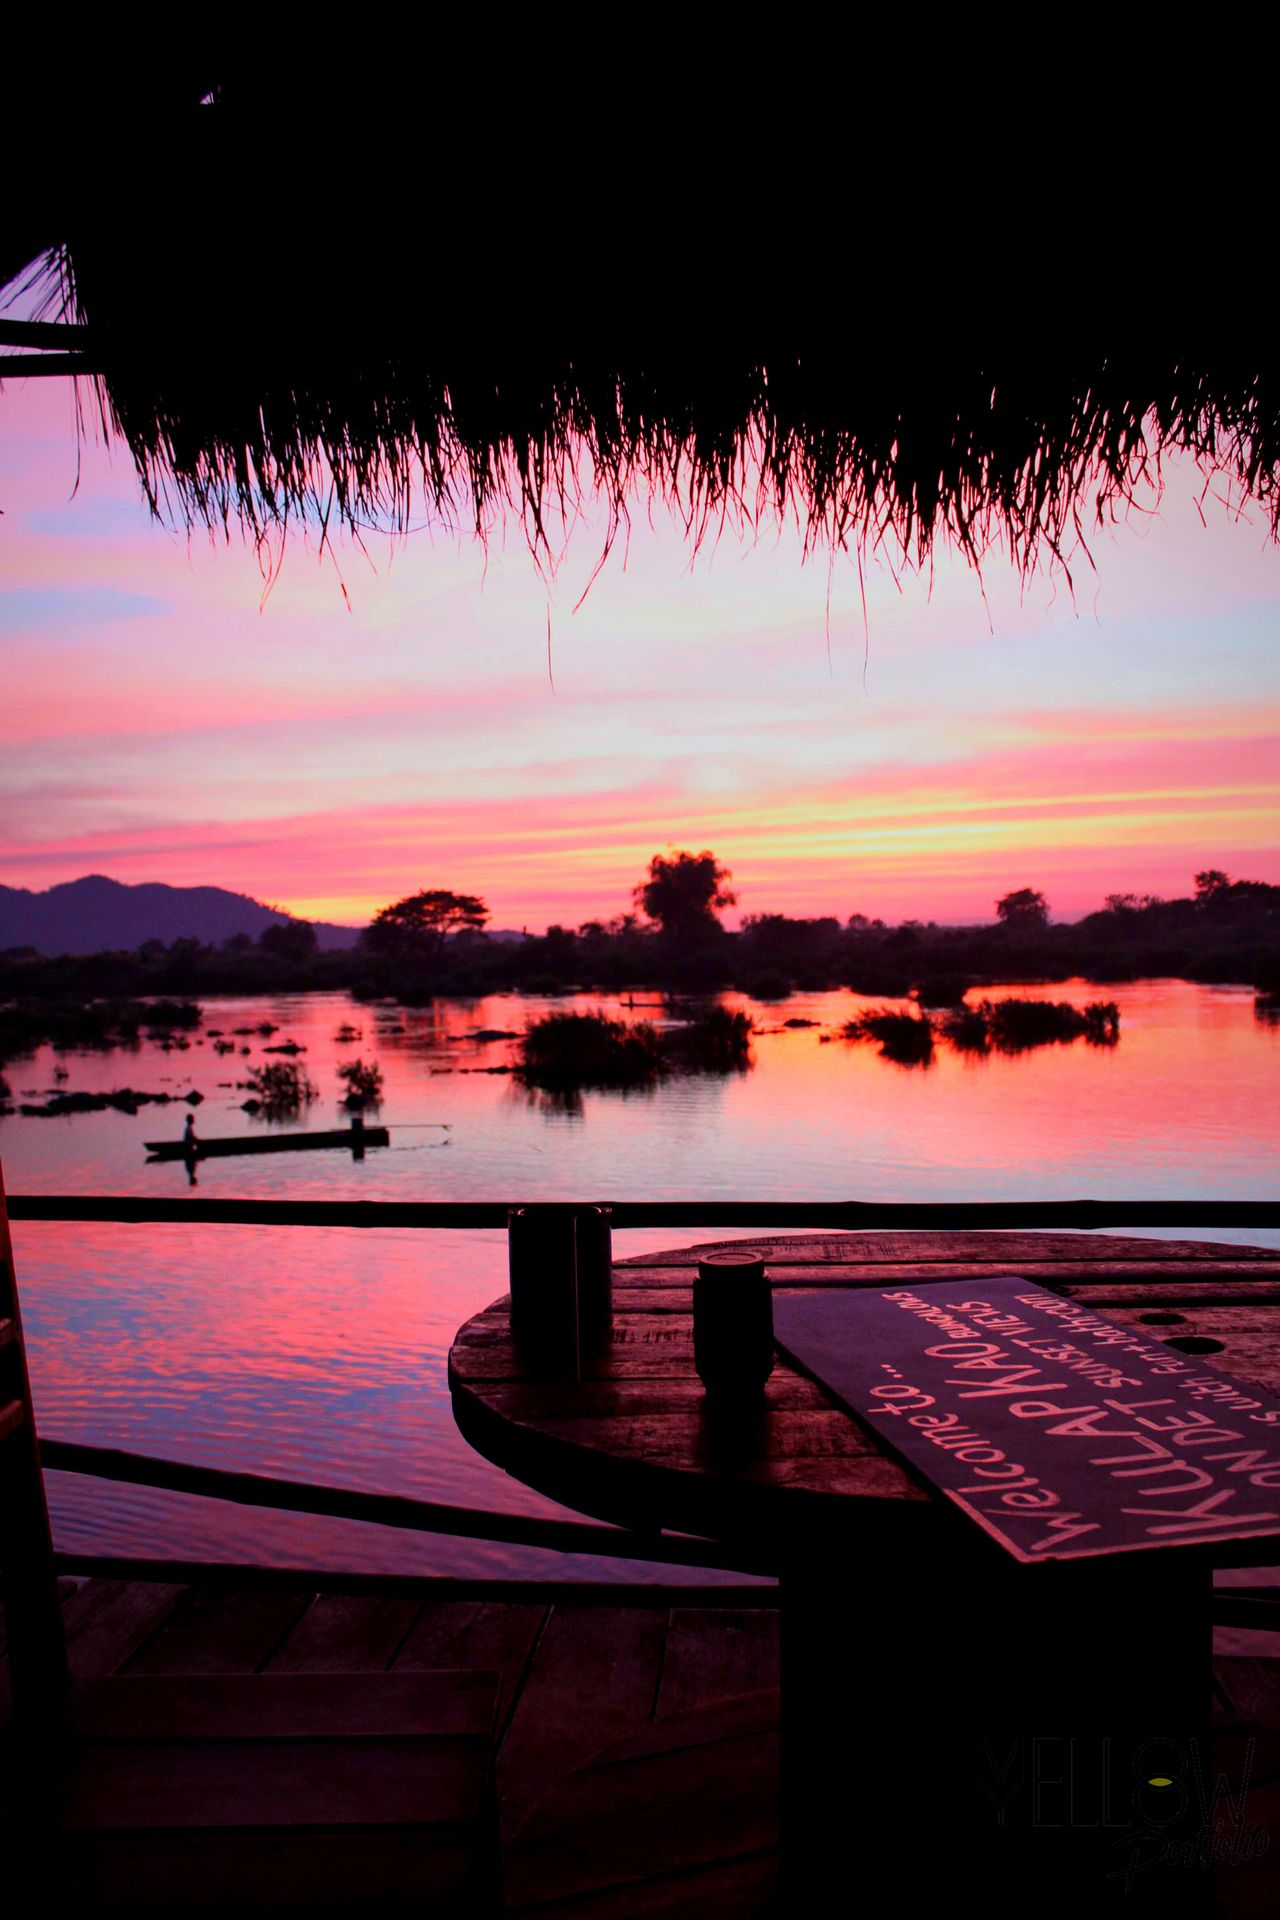 4000 Islands Don Det Laos Laos Travel Fishing Boat Reflection On Water Sunset Pink Sunset Sunset Side Painting Travel Photography Traveling Miles Away